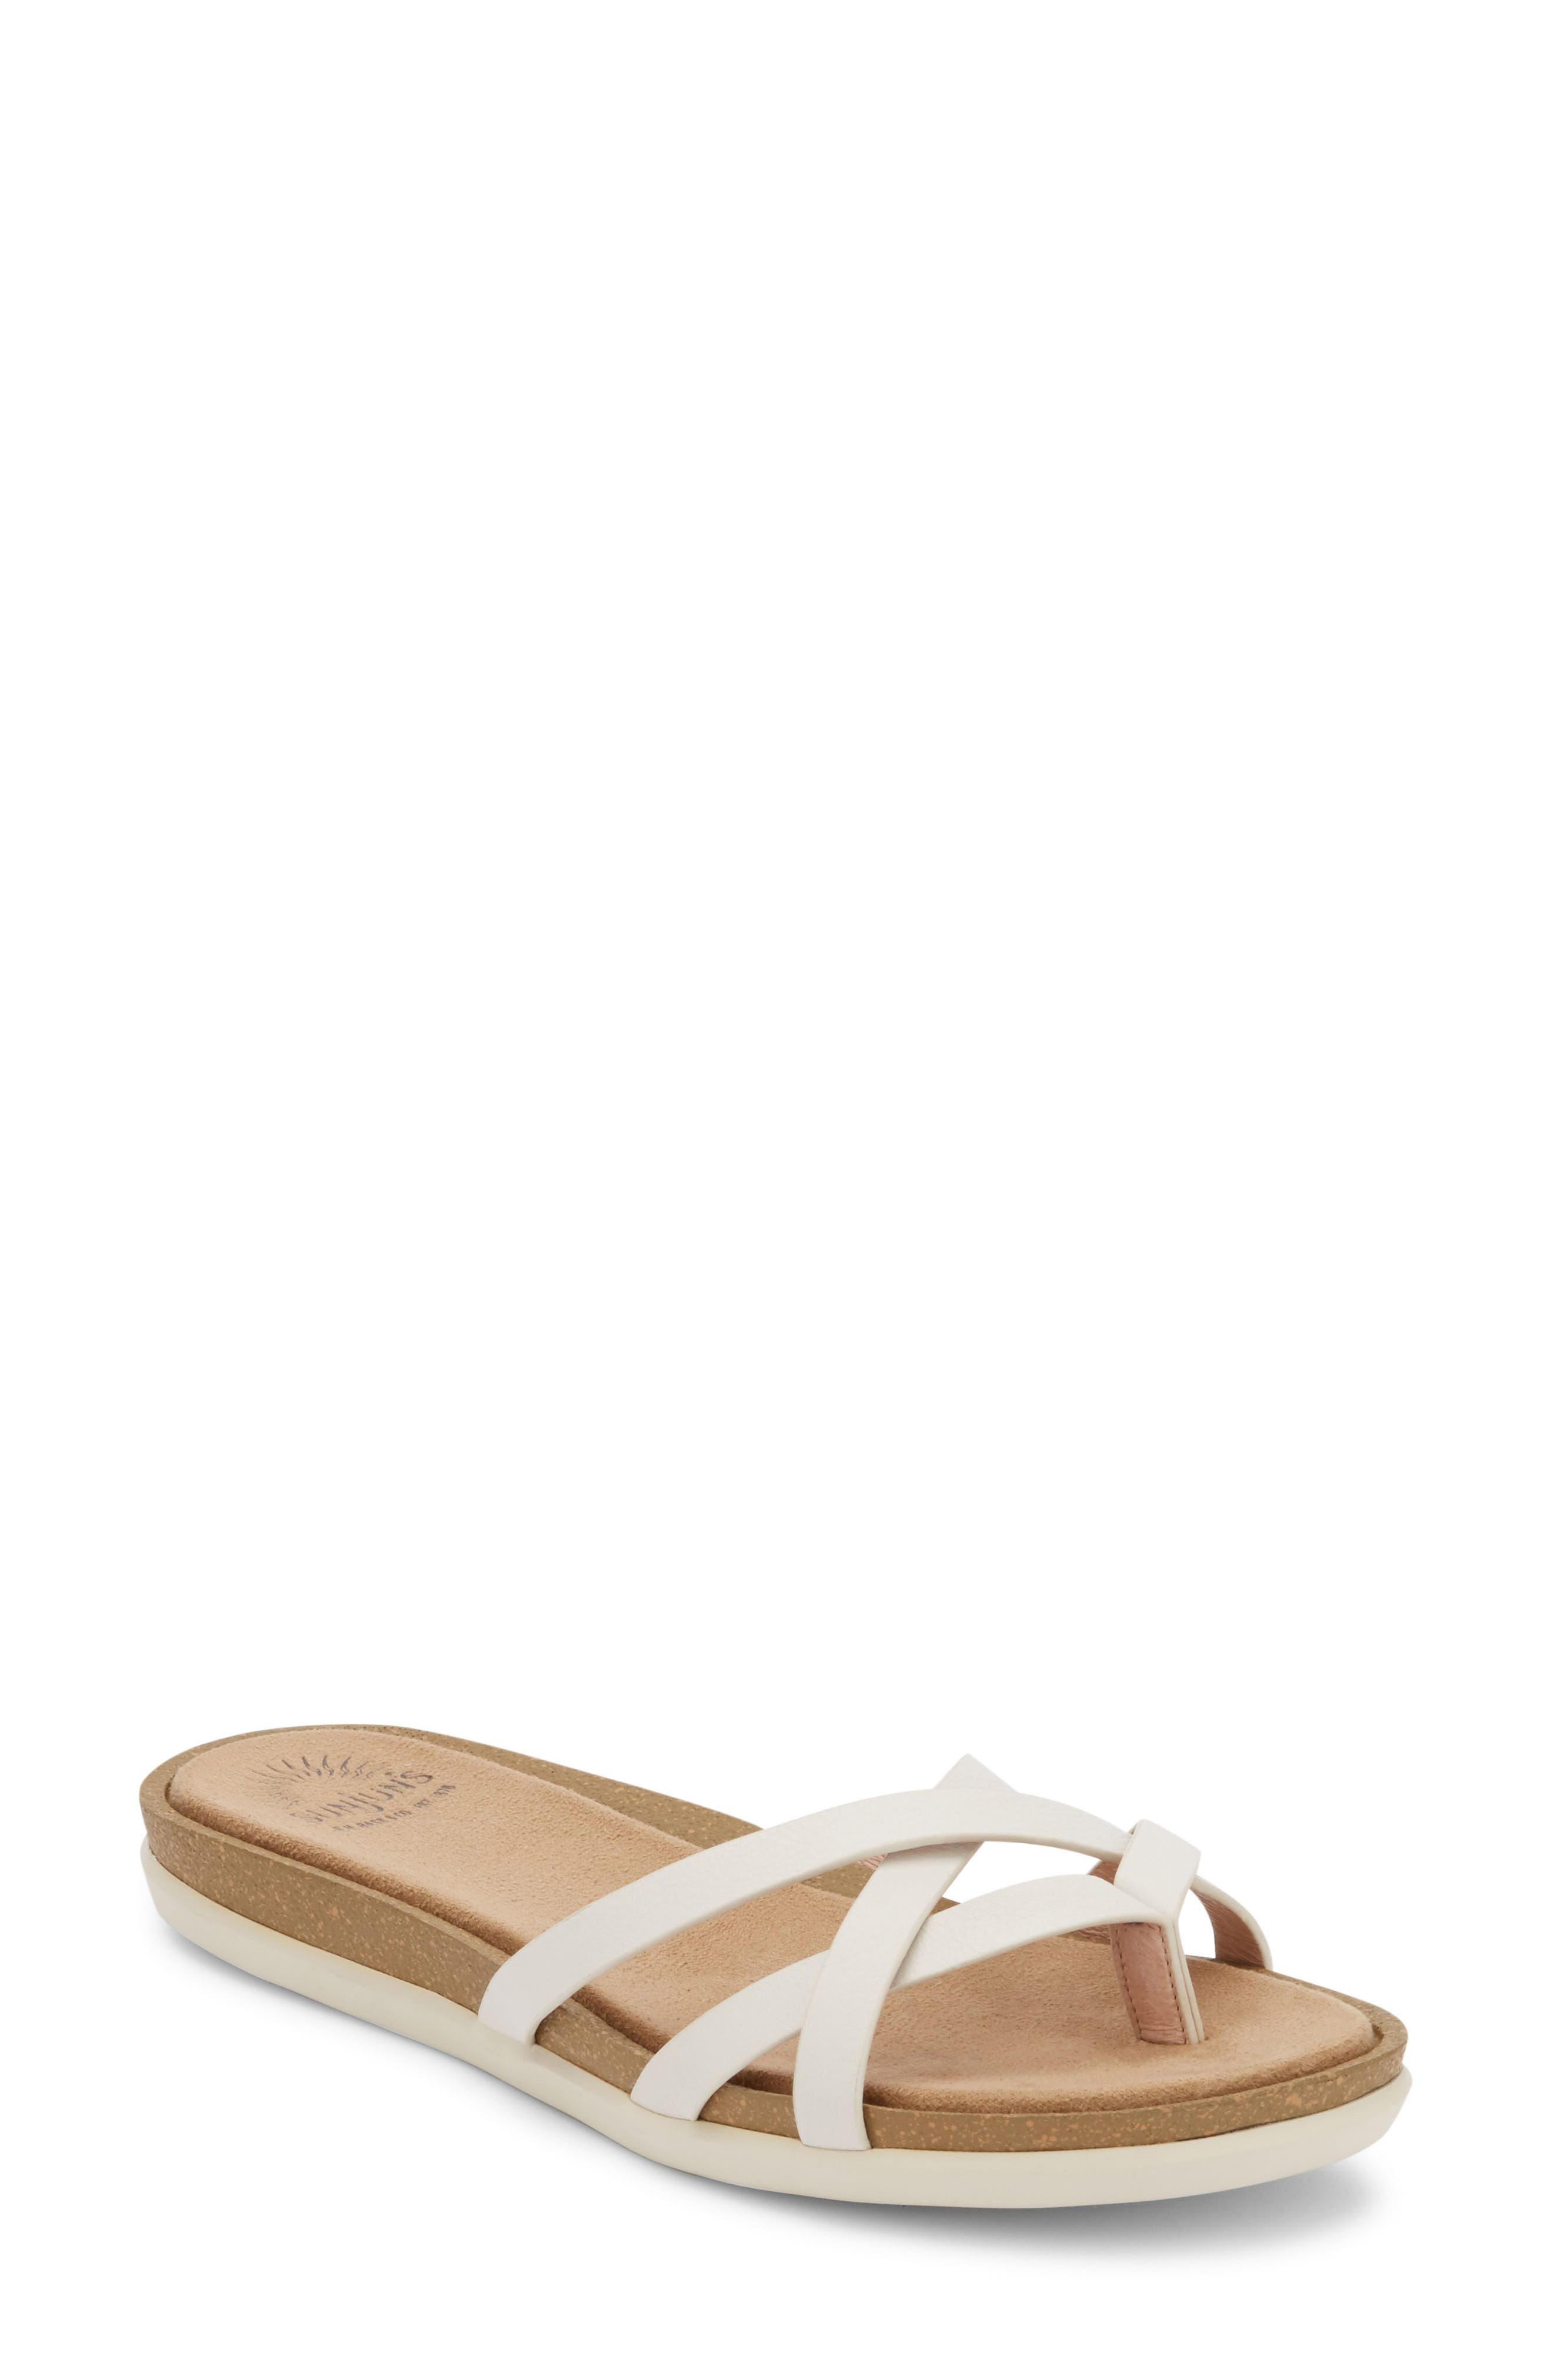 G.H. BASS & CO. Sharon Sandal in White Leather